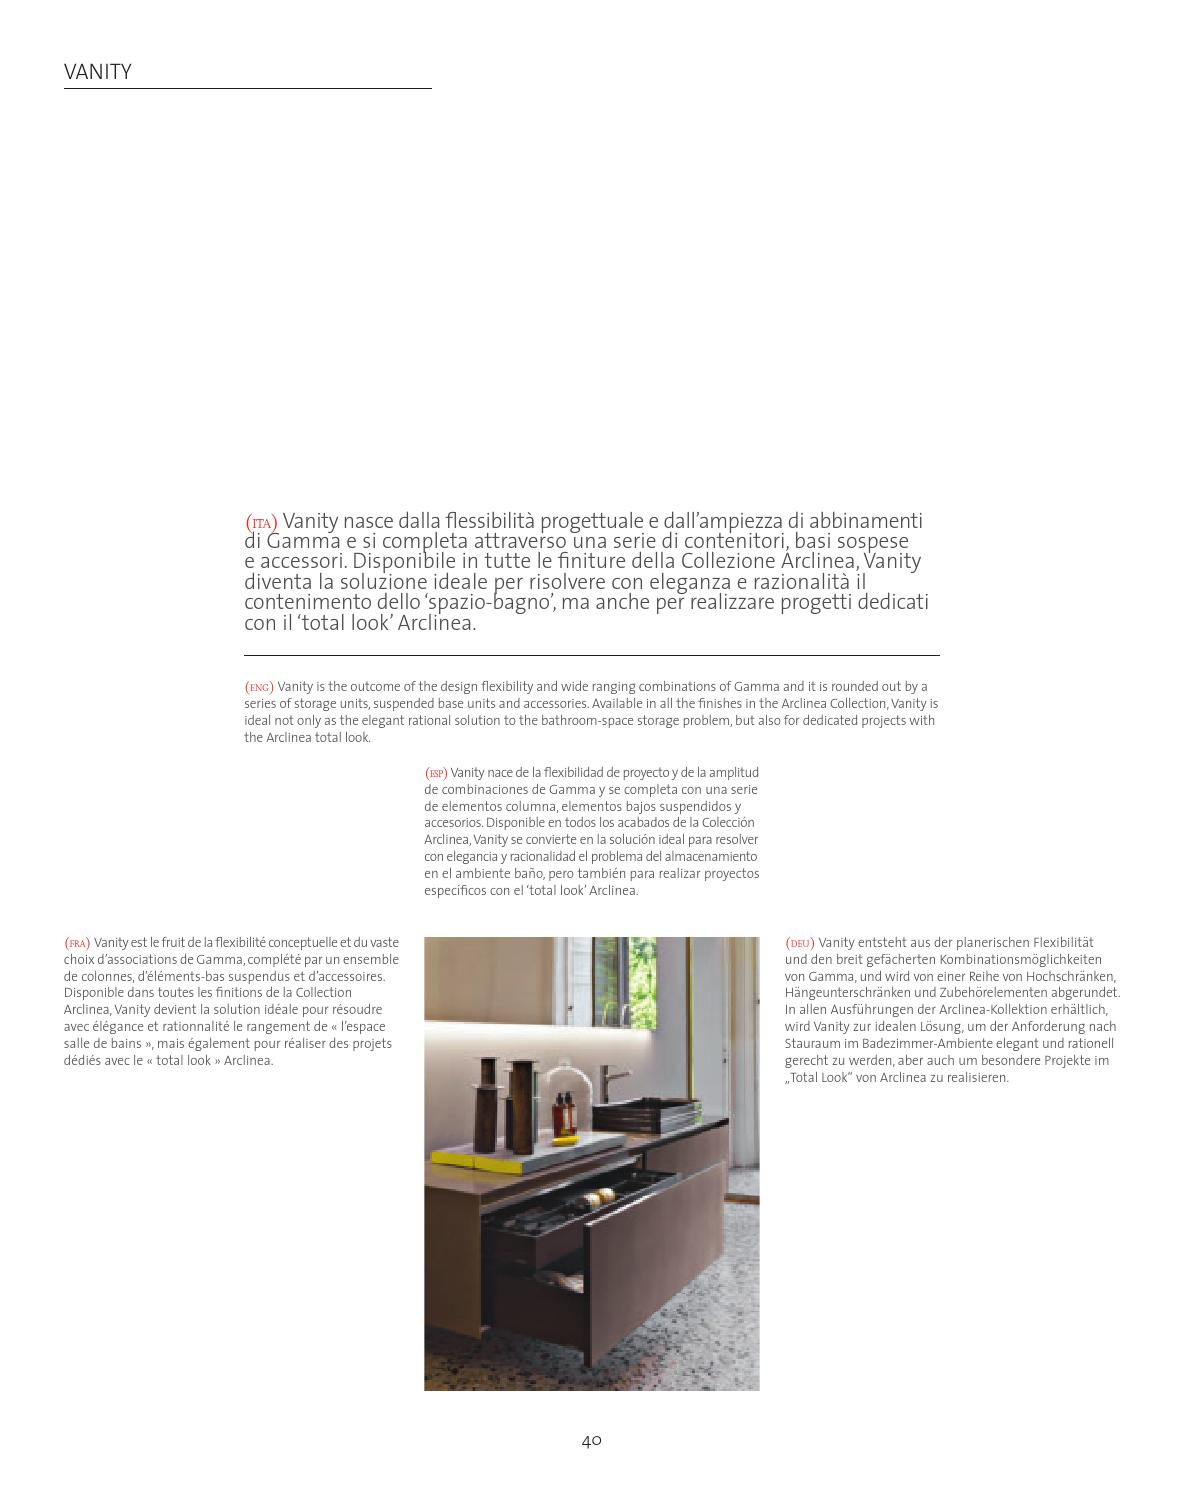 Badezimmer Mit Y The Arclinea 2016 Consumer Catalogue By Arclinea Arredamenti Issuu